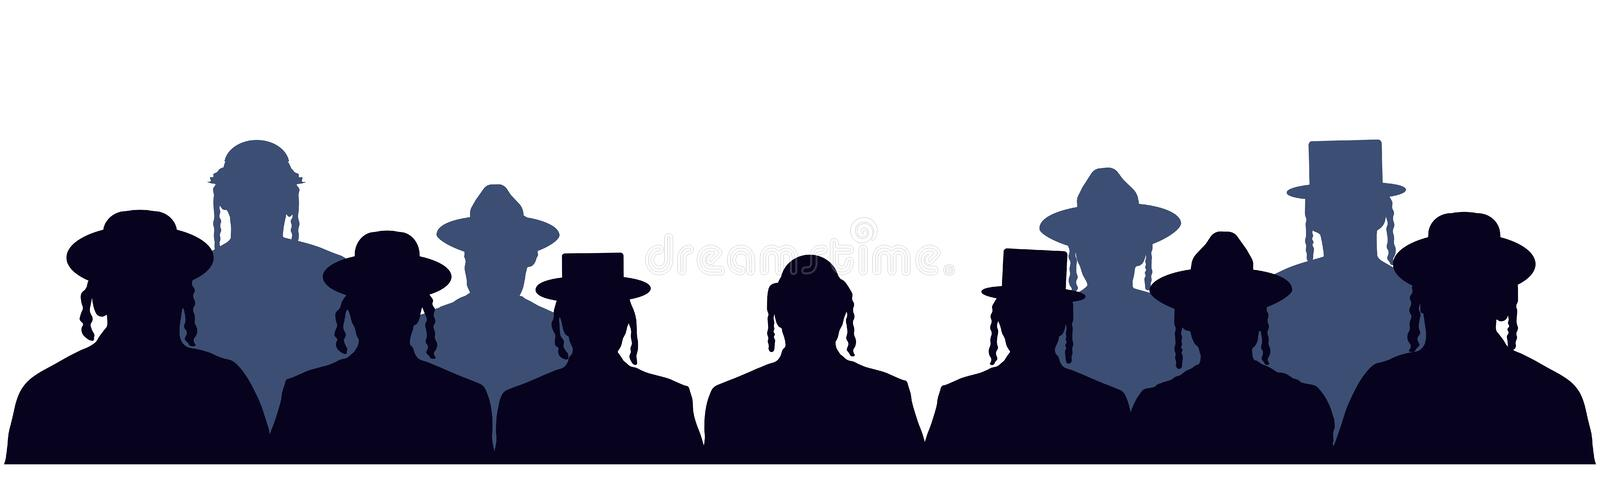 People portrait Israelite. Jewish head profile avatar icons. Crowd of people of Jewish nationality. Audience public auditory. Silhouette vector set royalty free illustration